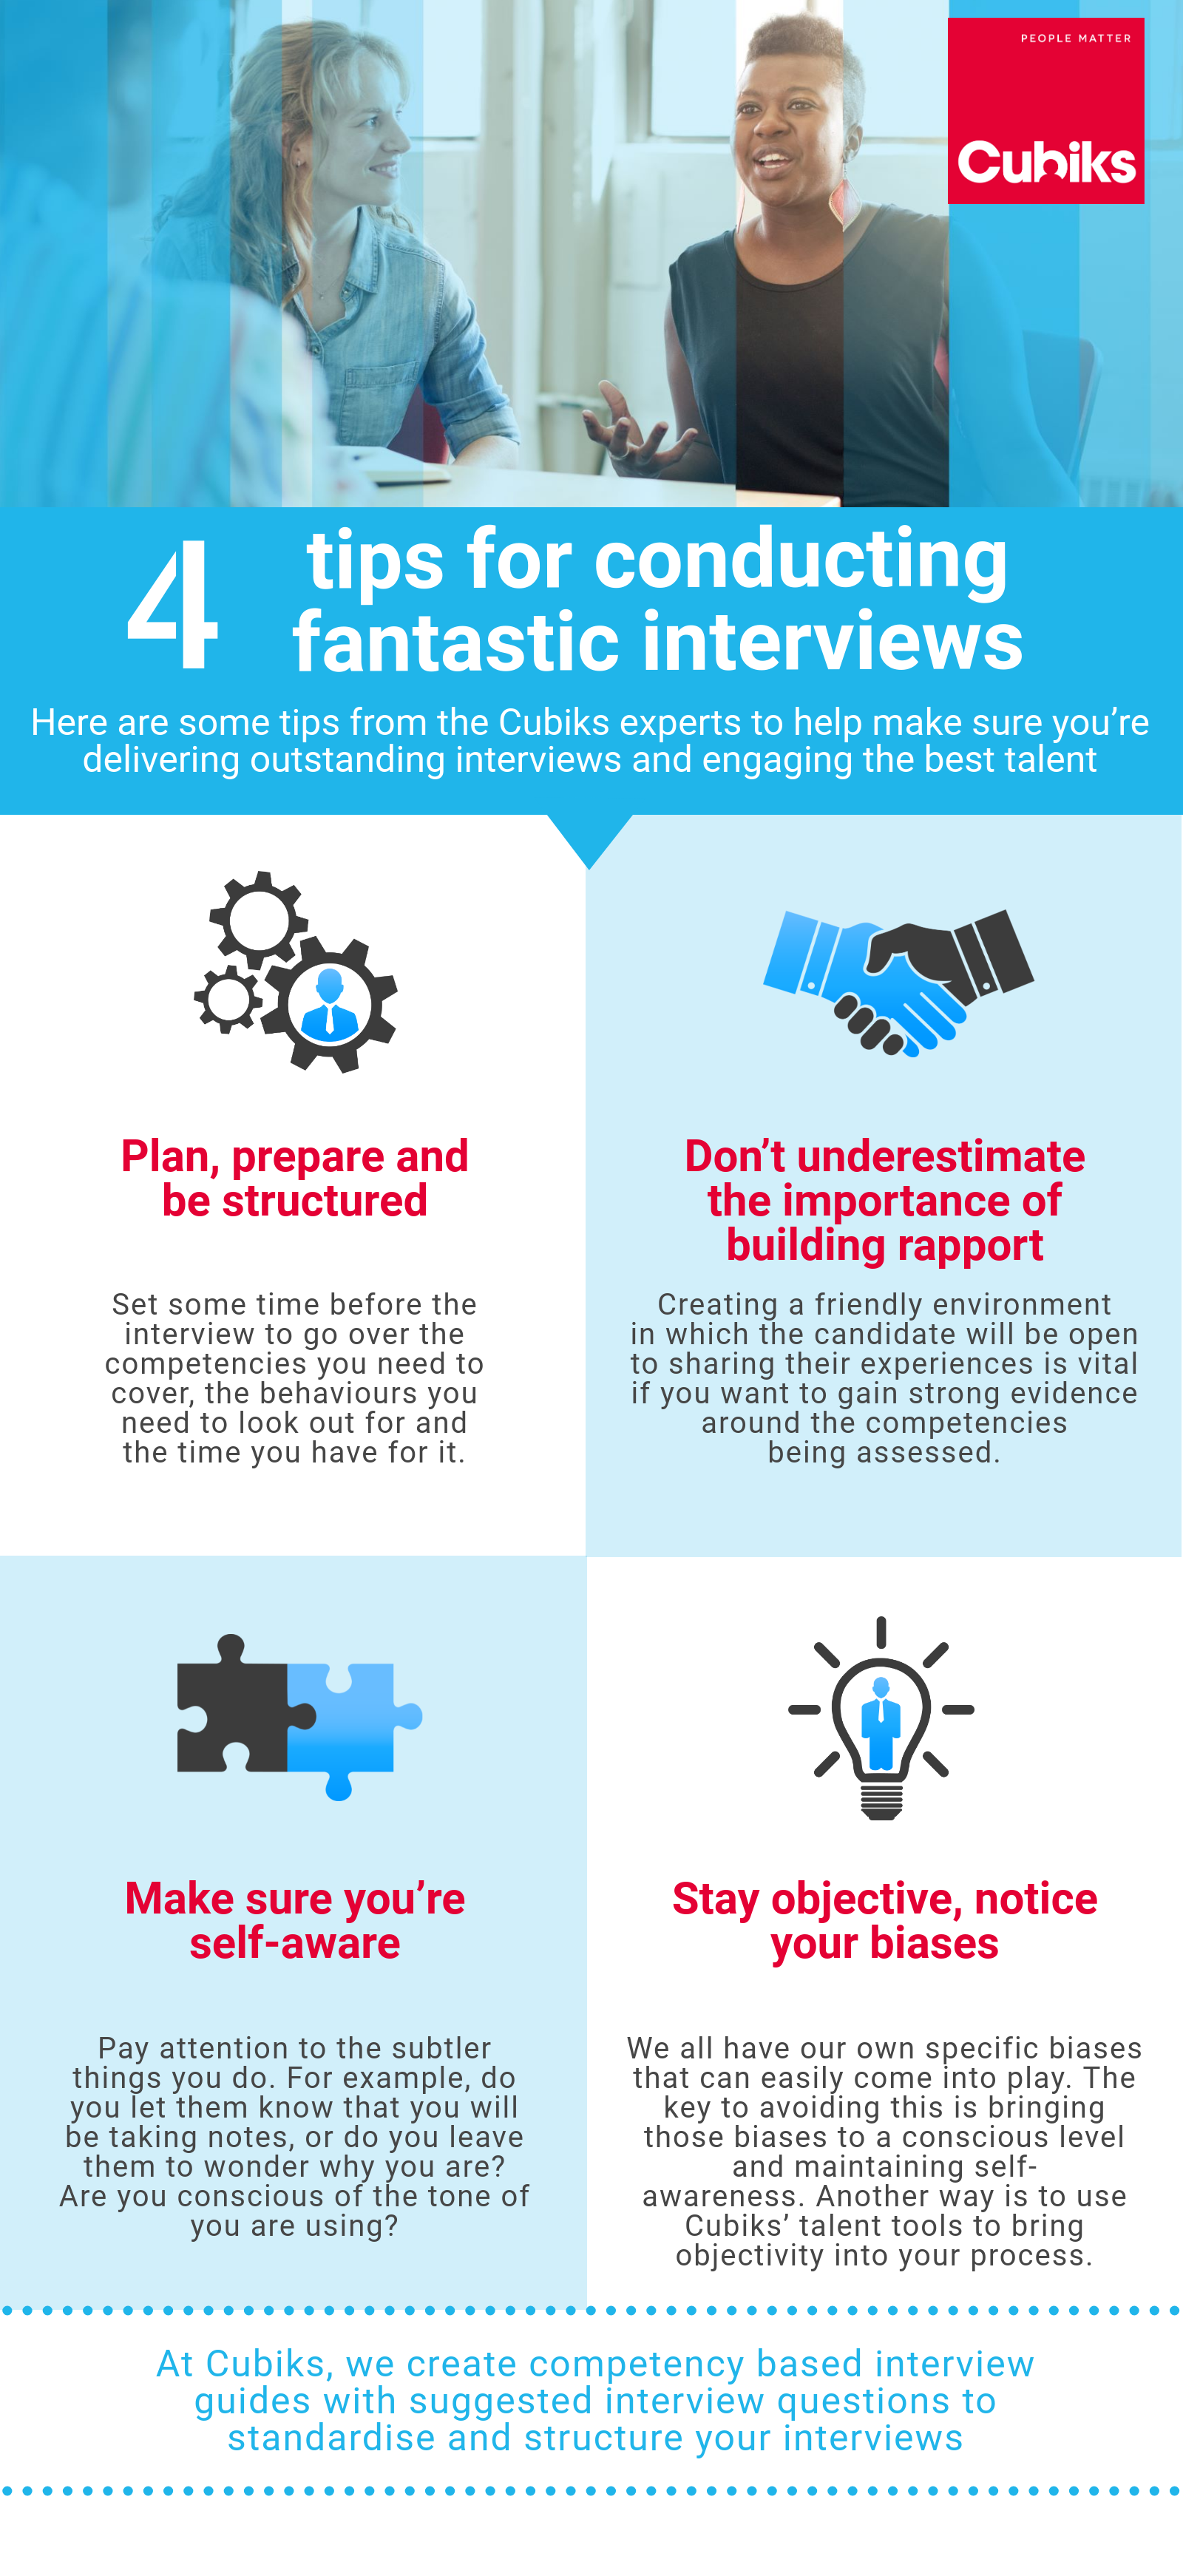 Recruitment interview tips from Cubiks experts infographic